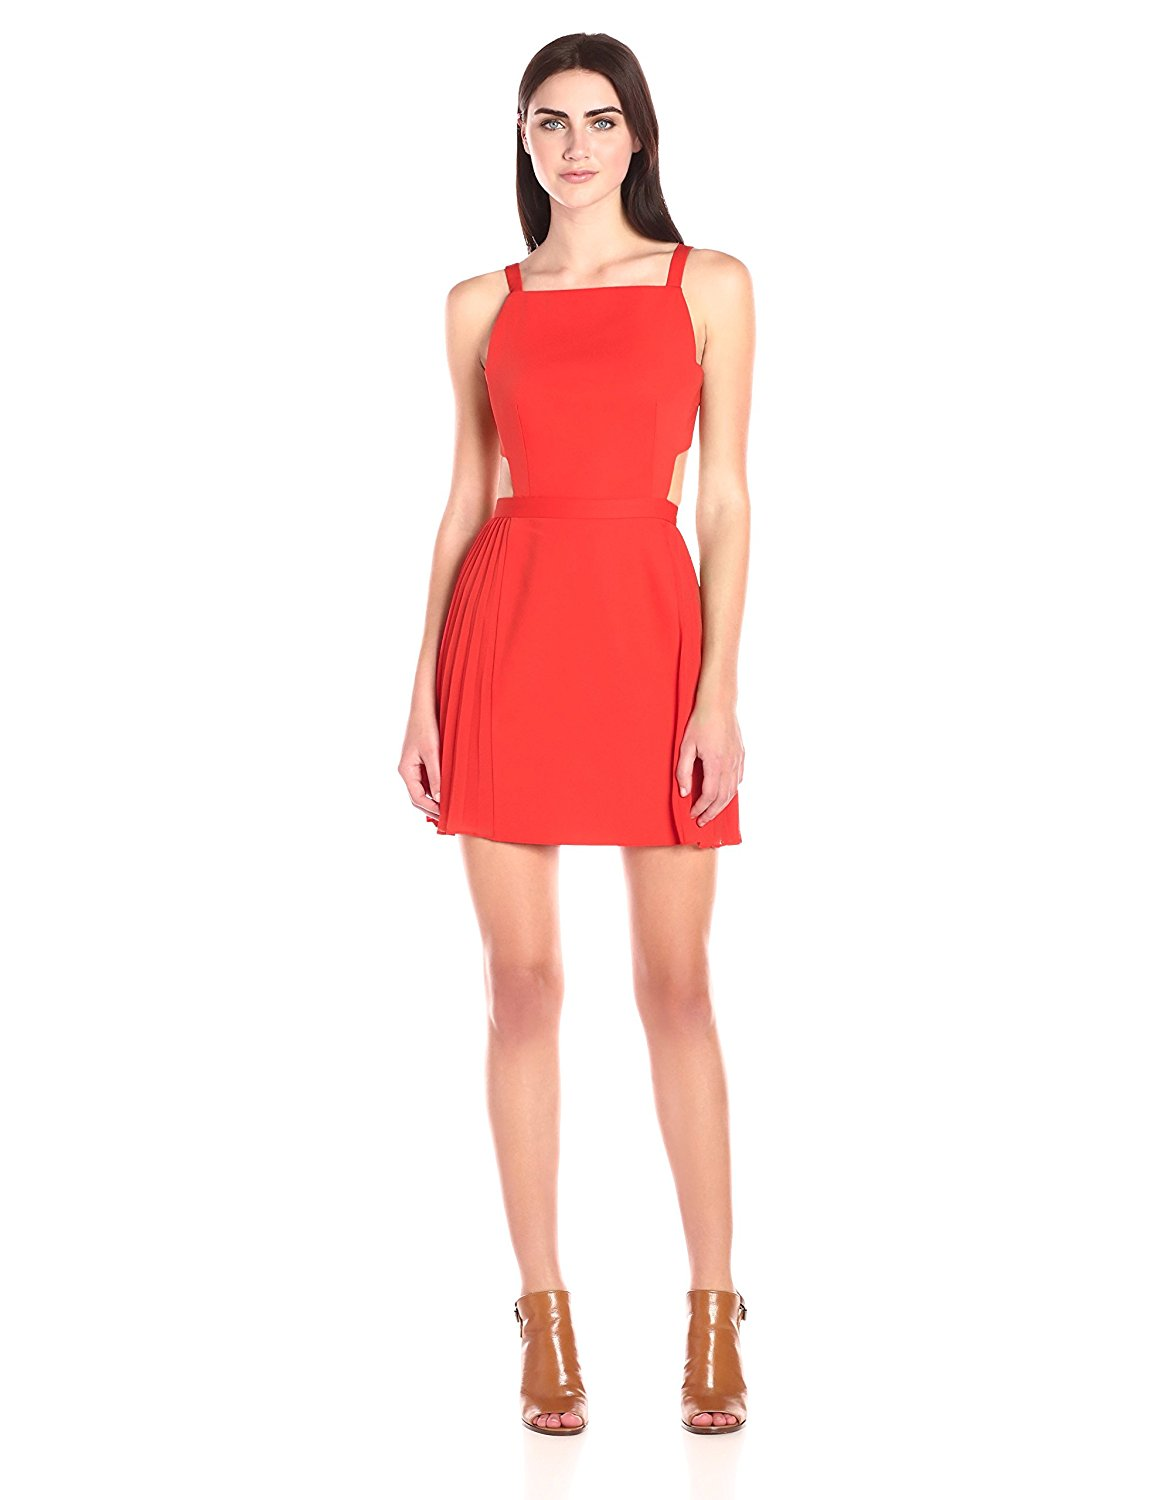 BCBGMax Azria Women's Brielle Sleeveless Dress with Side Pleats